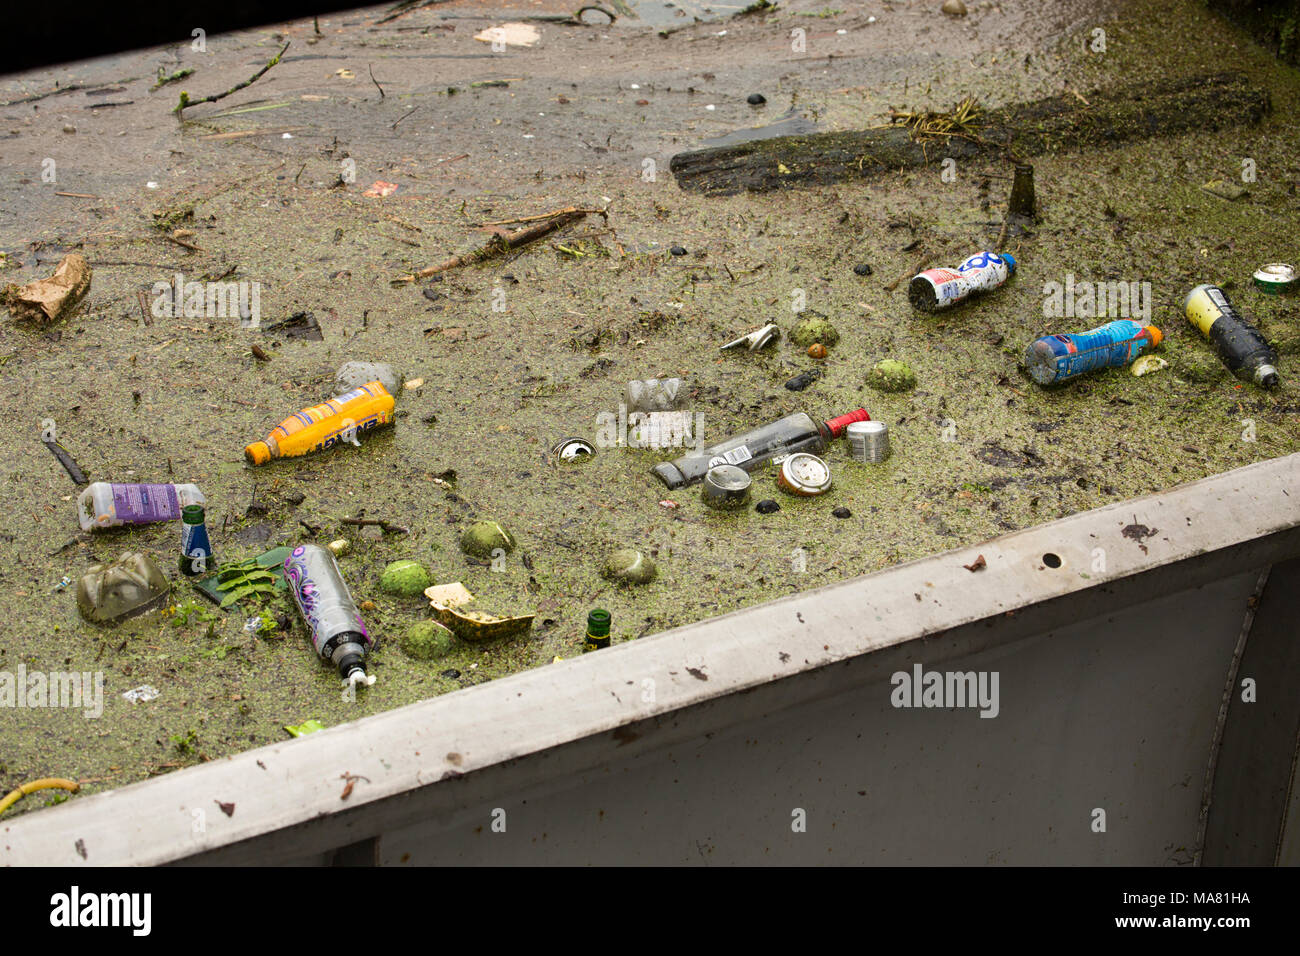 Plastic bottles, tennis balls and other rubbish accumulating about a sluice gate, River Avon Salisbury Wiltshire England UK - Stock Image